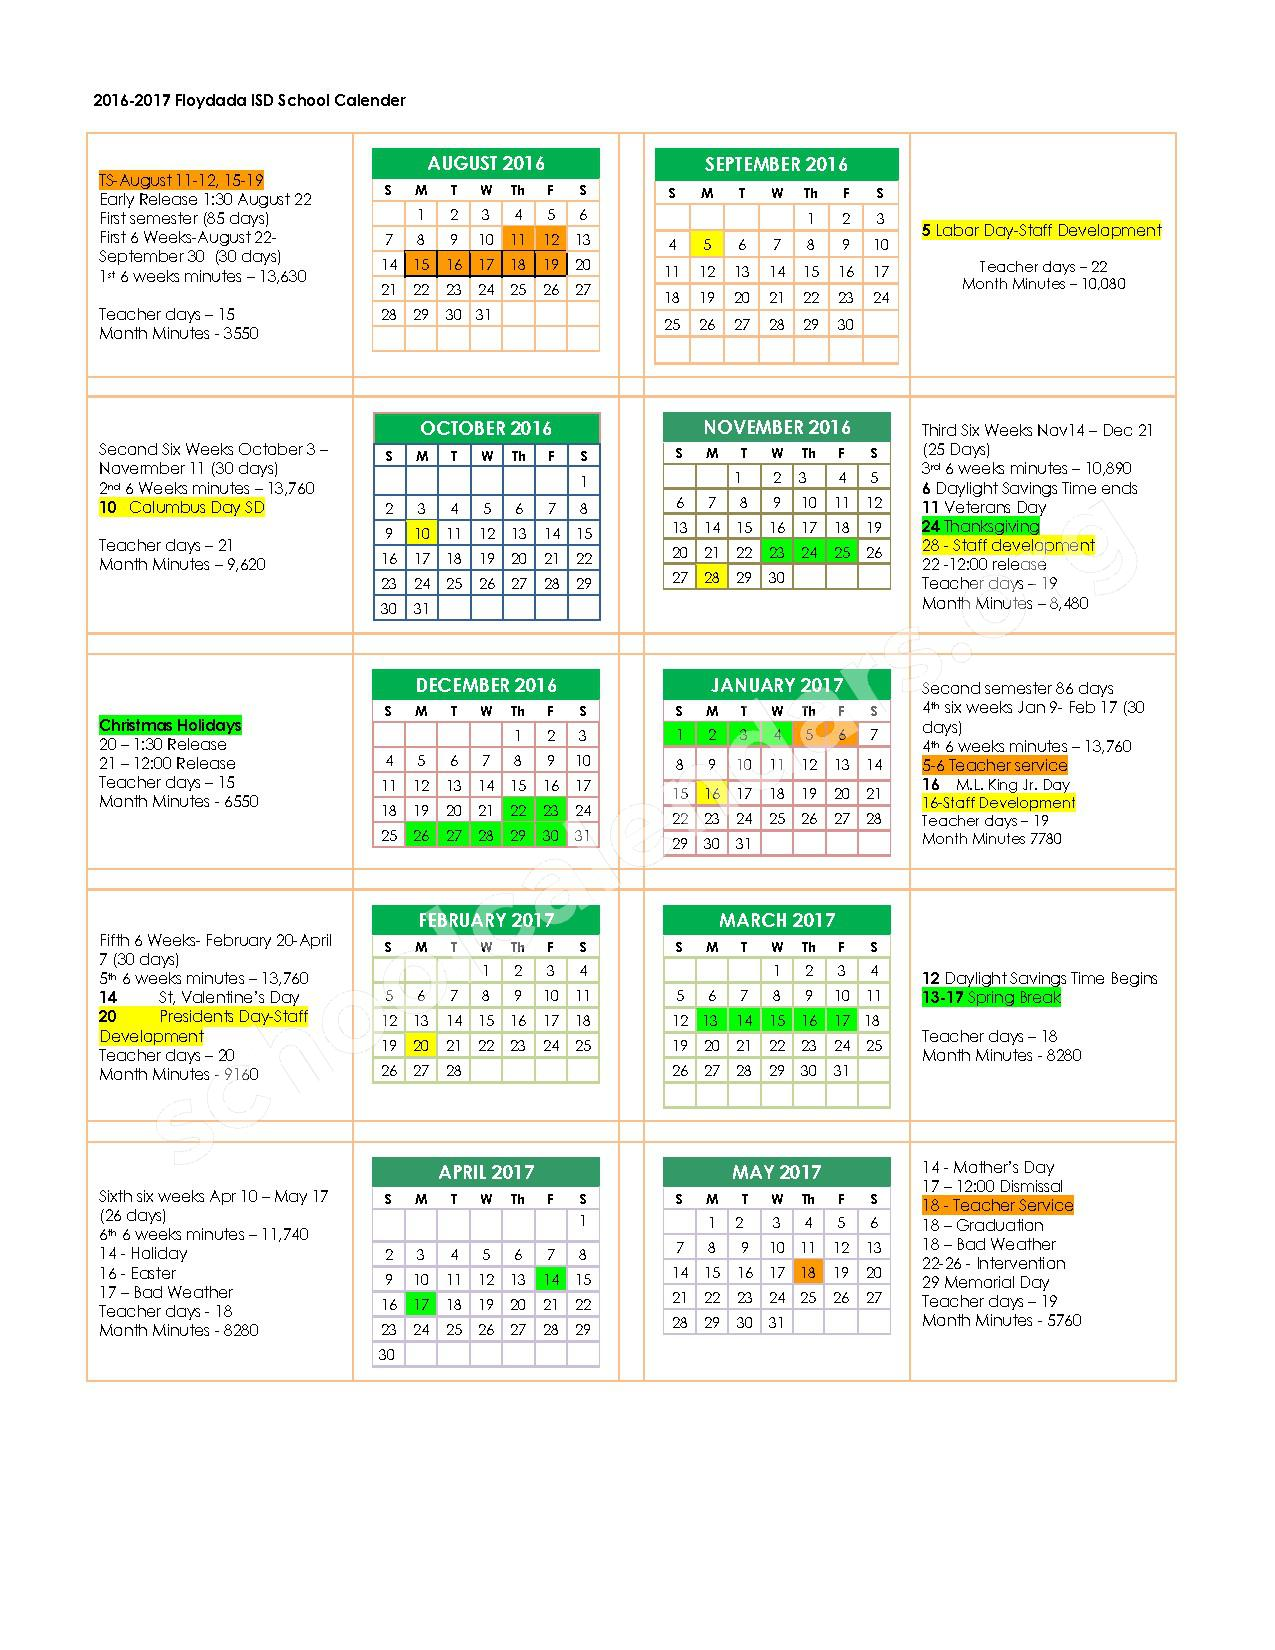 2016 - 2017 School Calendar – Floydada Independent School District – page 1